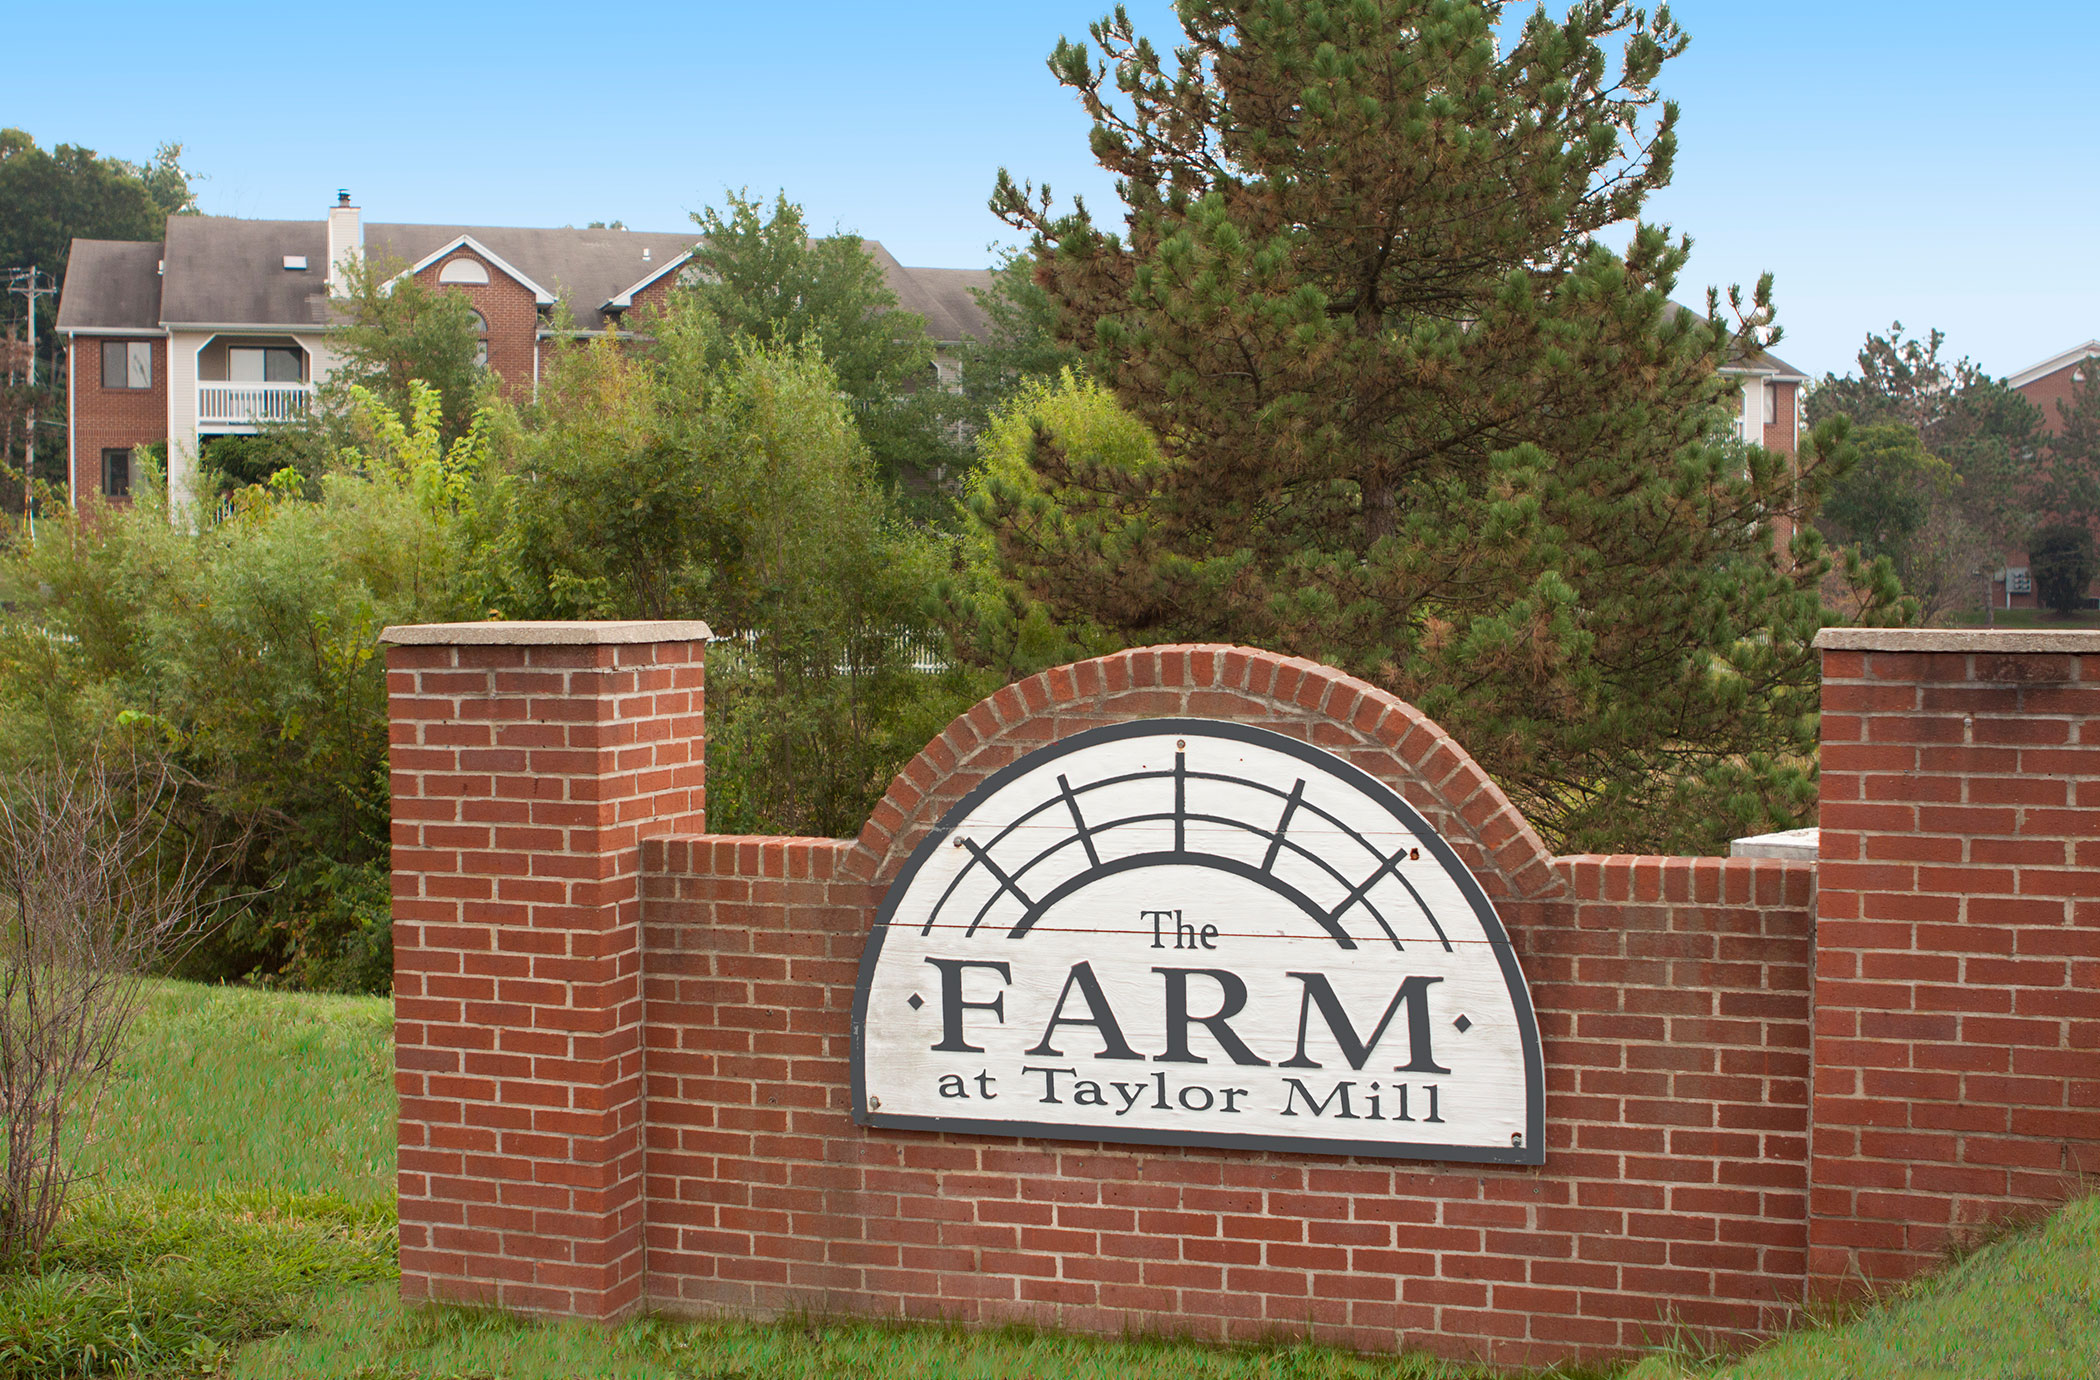 The Farm at Taylor Mill